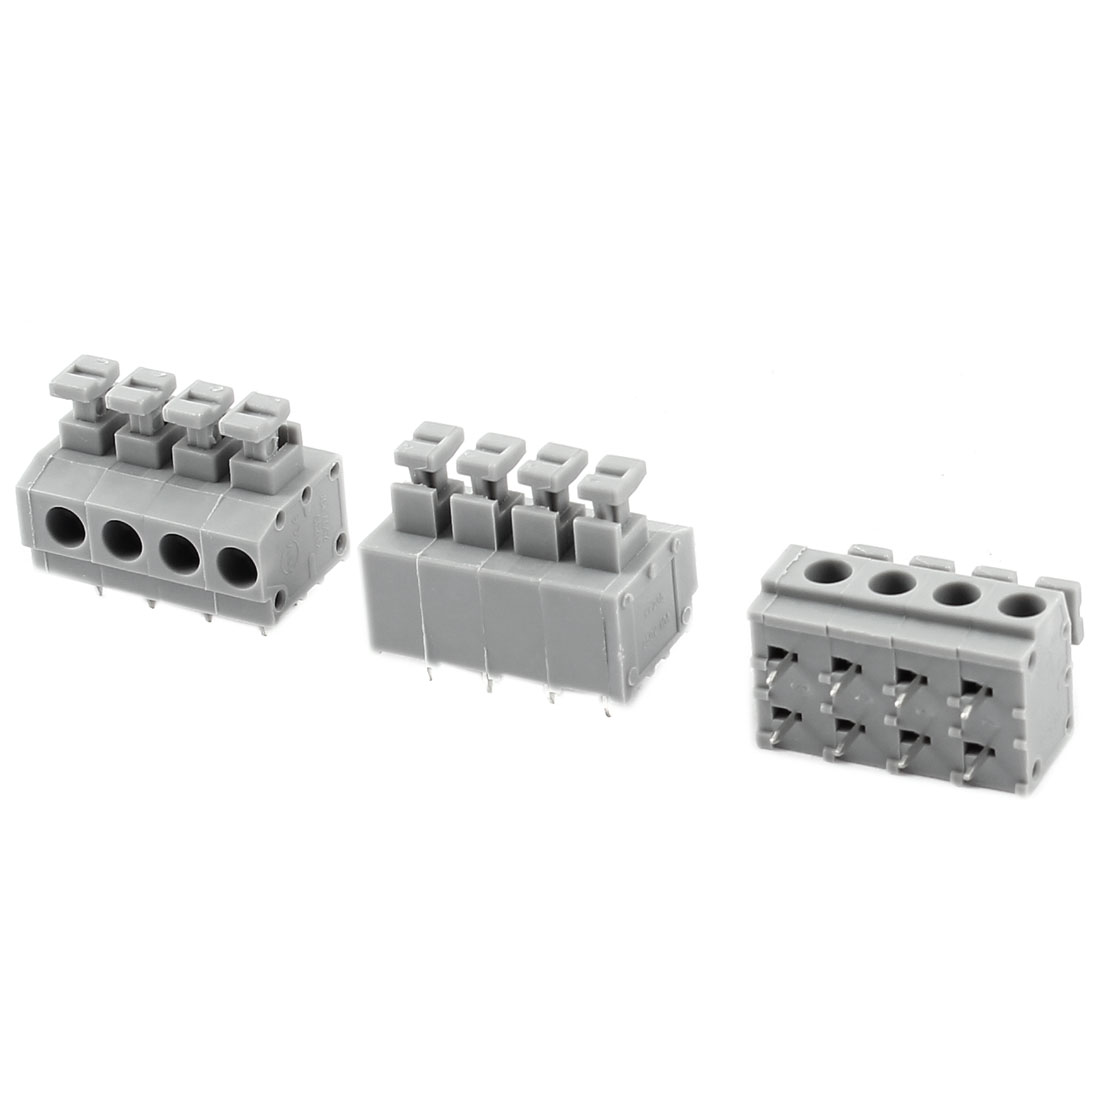 3pcs Straight 4 Positions 5.0mm PCB Board Screwless Spring Terminal Blocks Gray